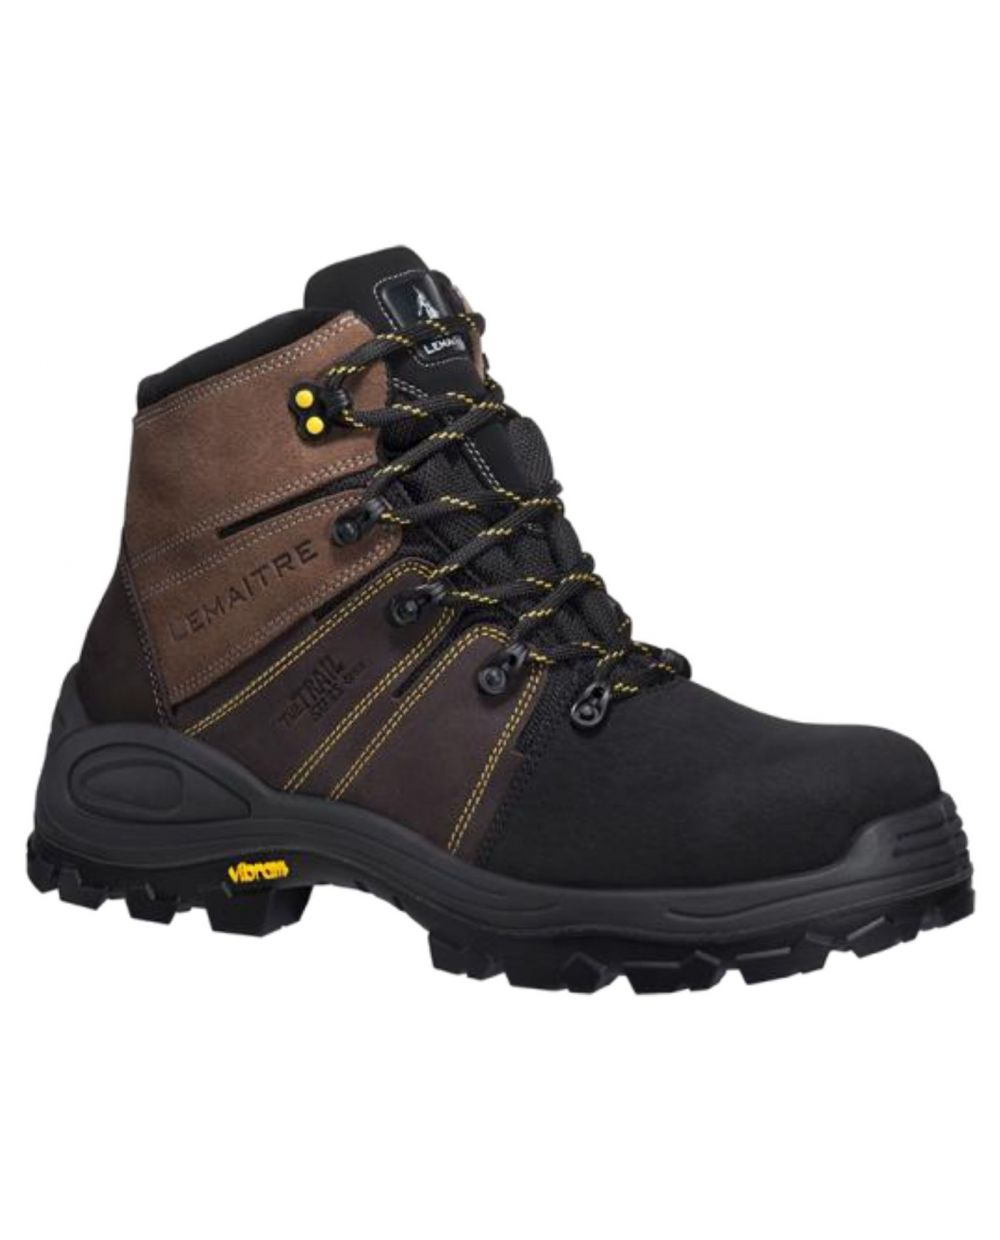 Trek Brun S3 Waterproof Hiker